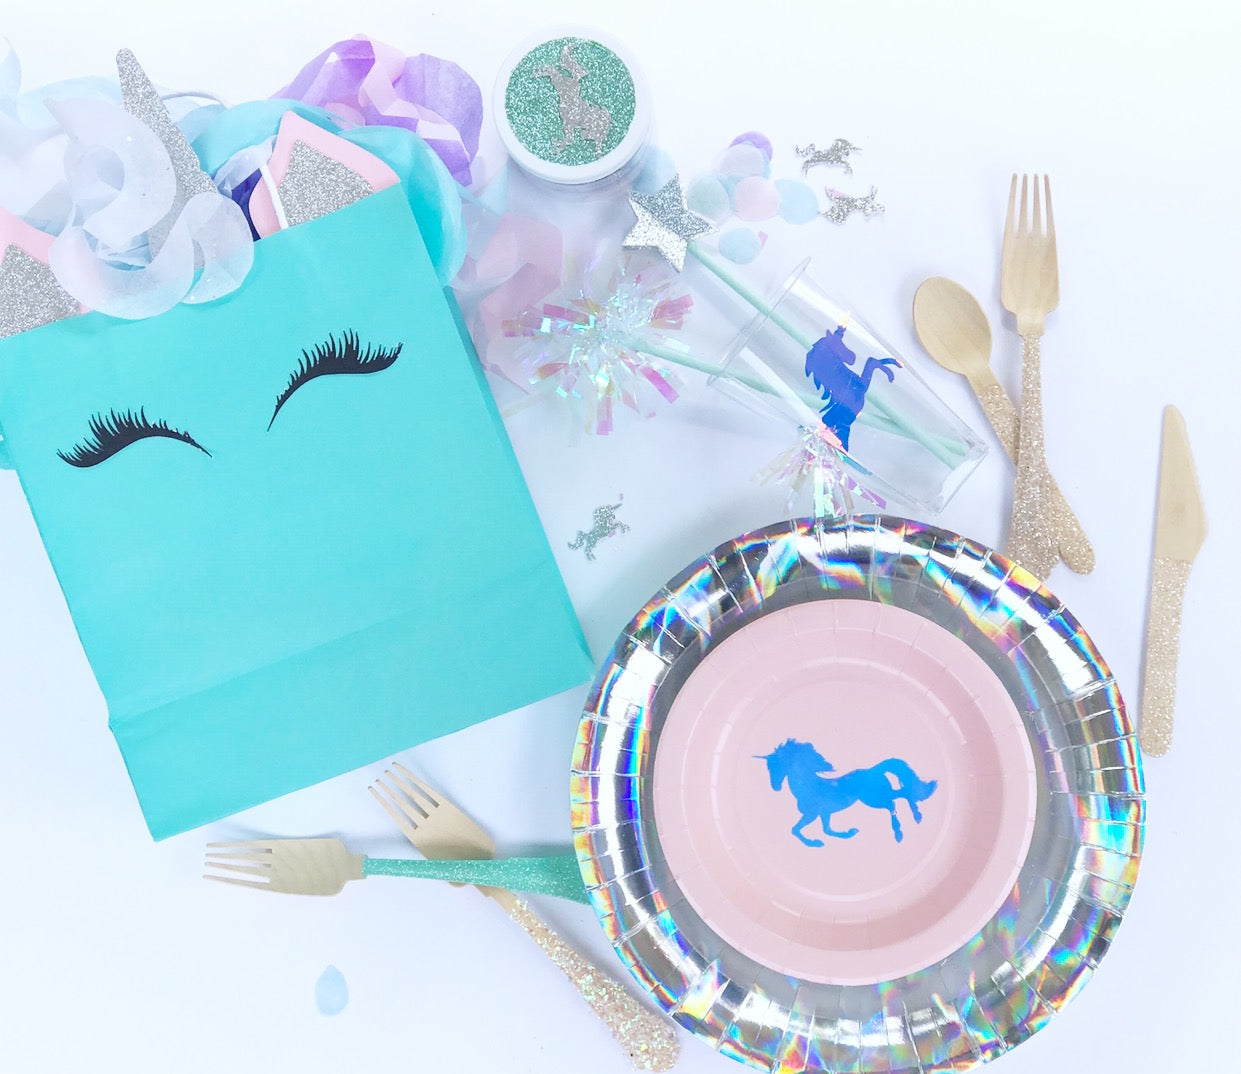 Unicorn party decorations by Republic Of Party